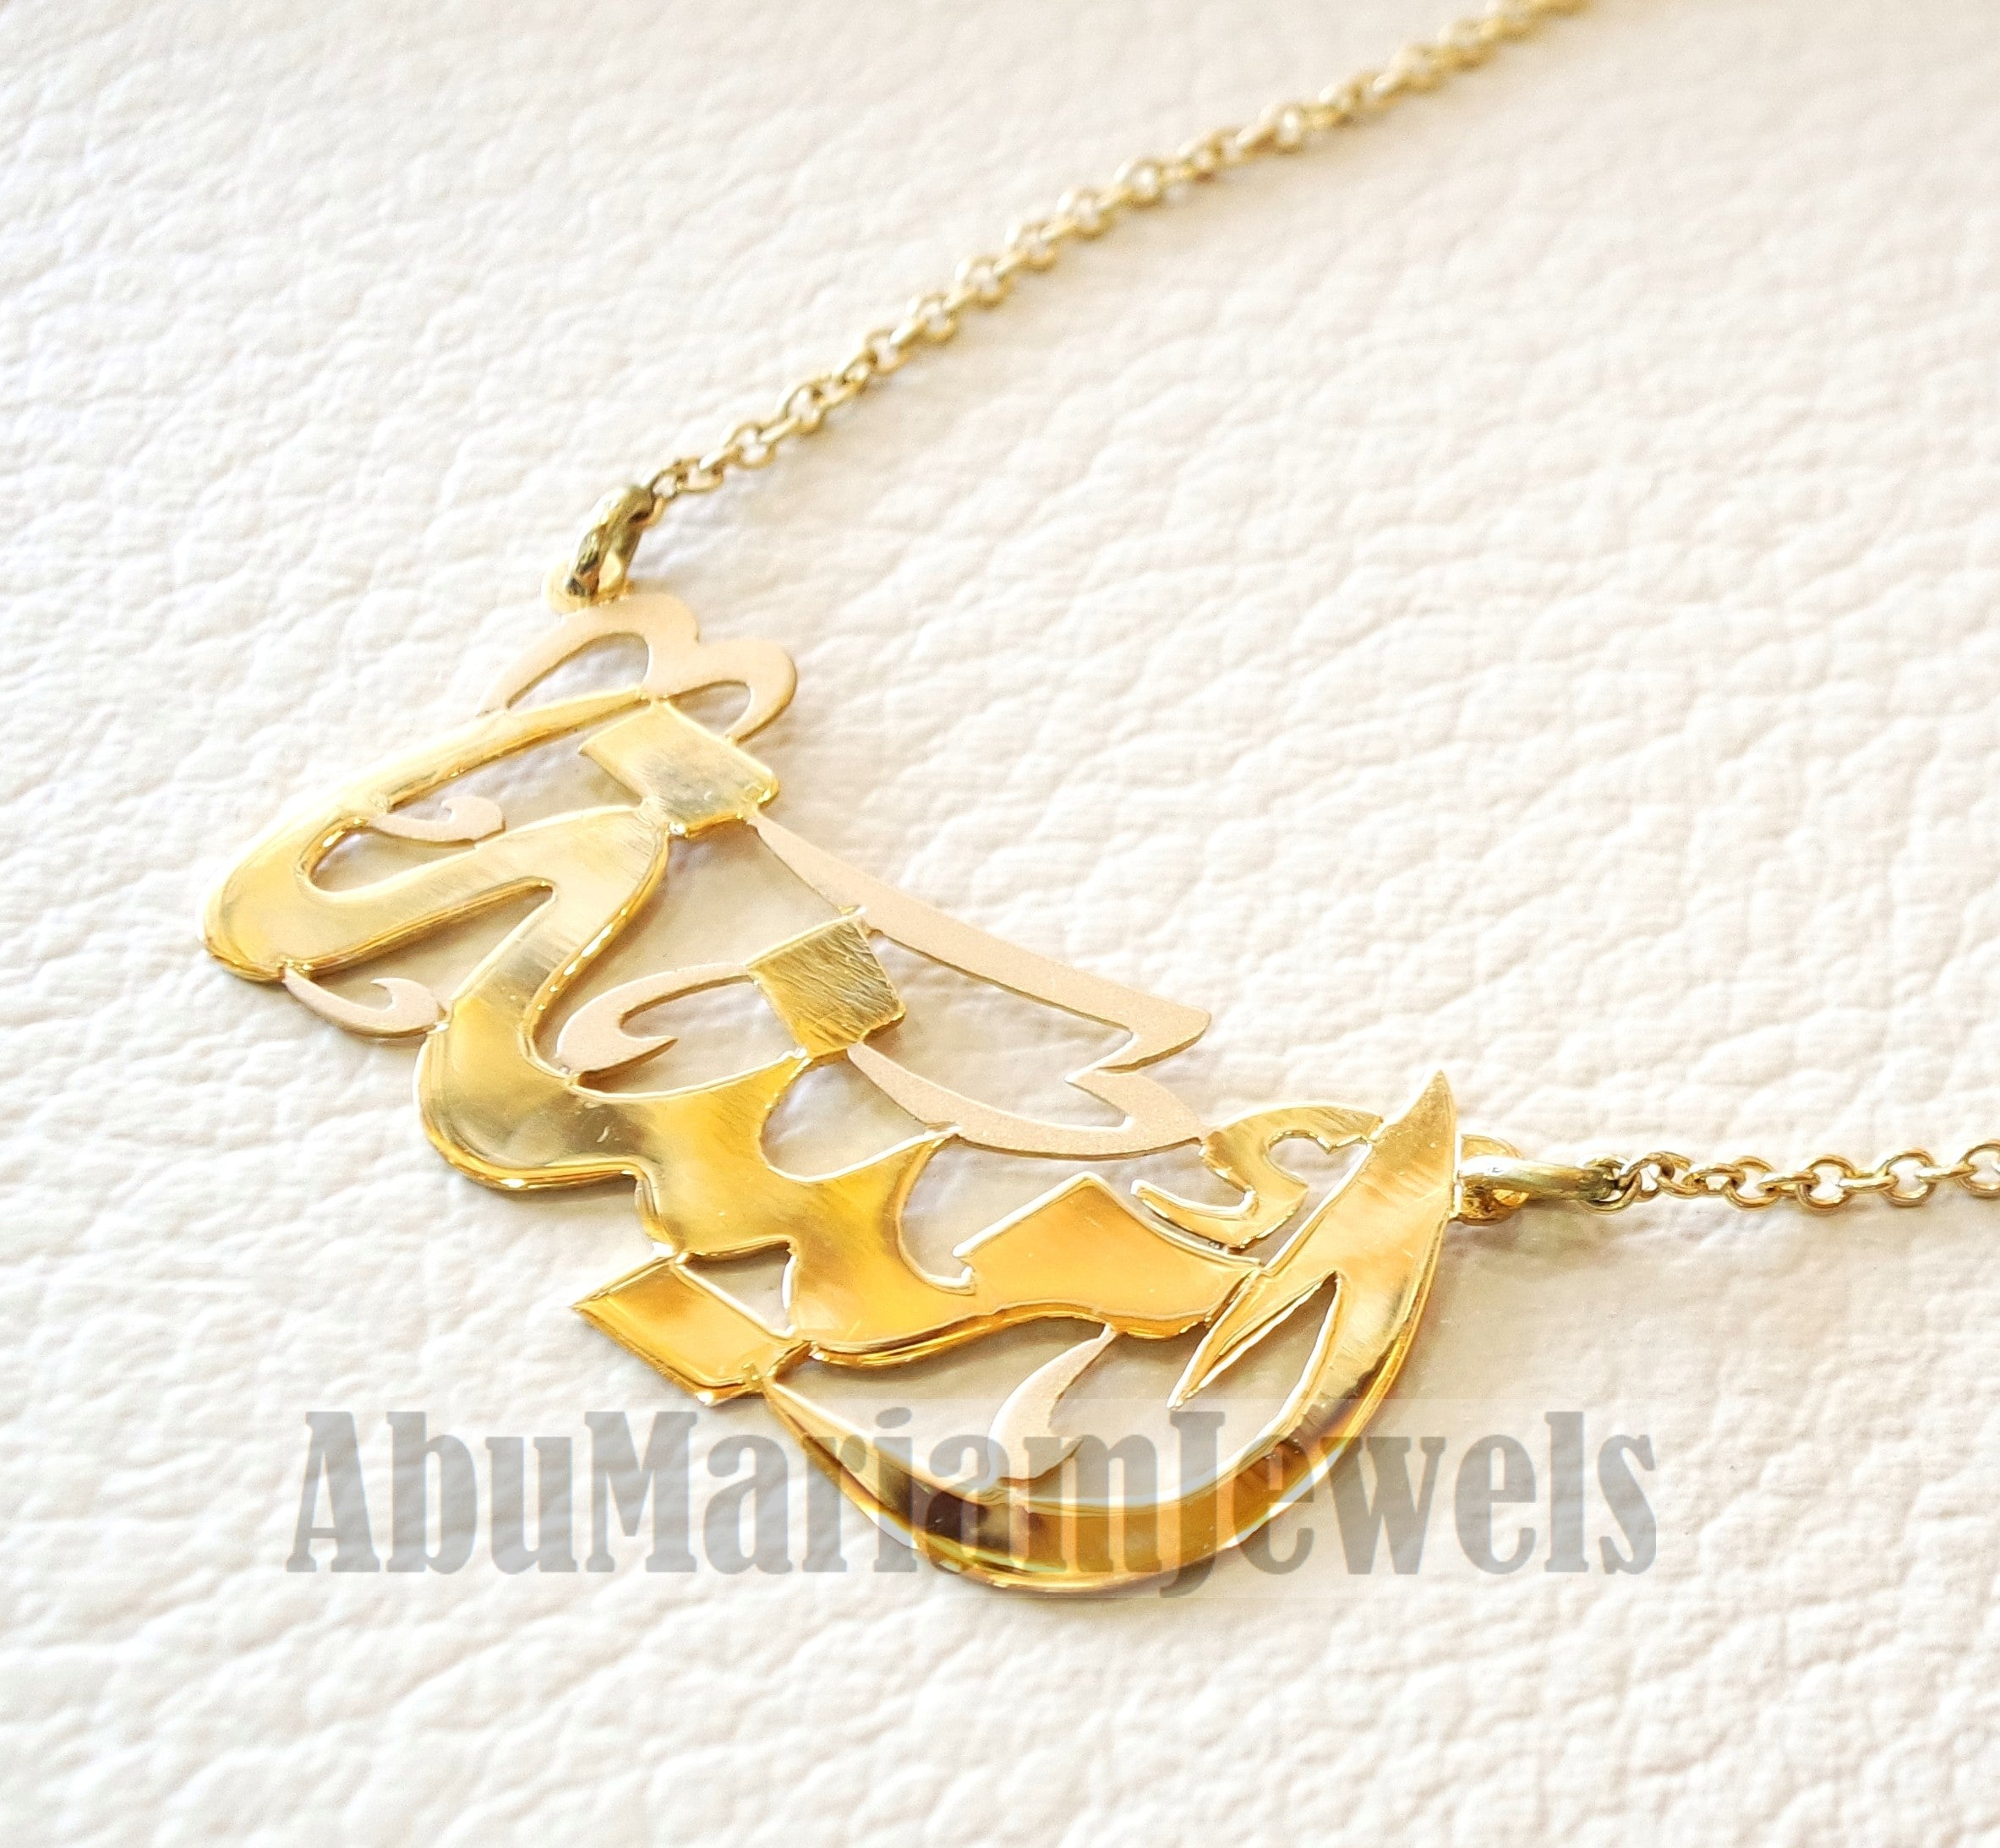 personalized customized 1 name 18 k gold arabic calligraphy pendant with chain standard , pear , rectangular or any shape fine jewelry N1006